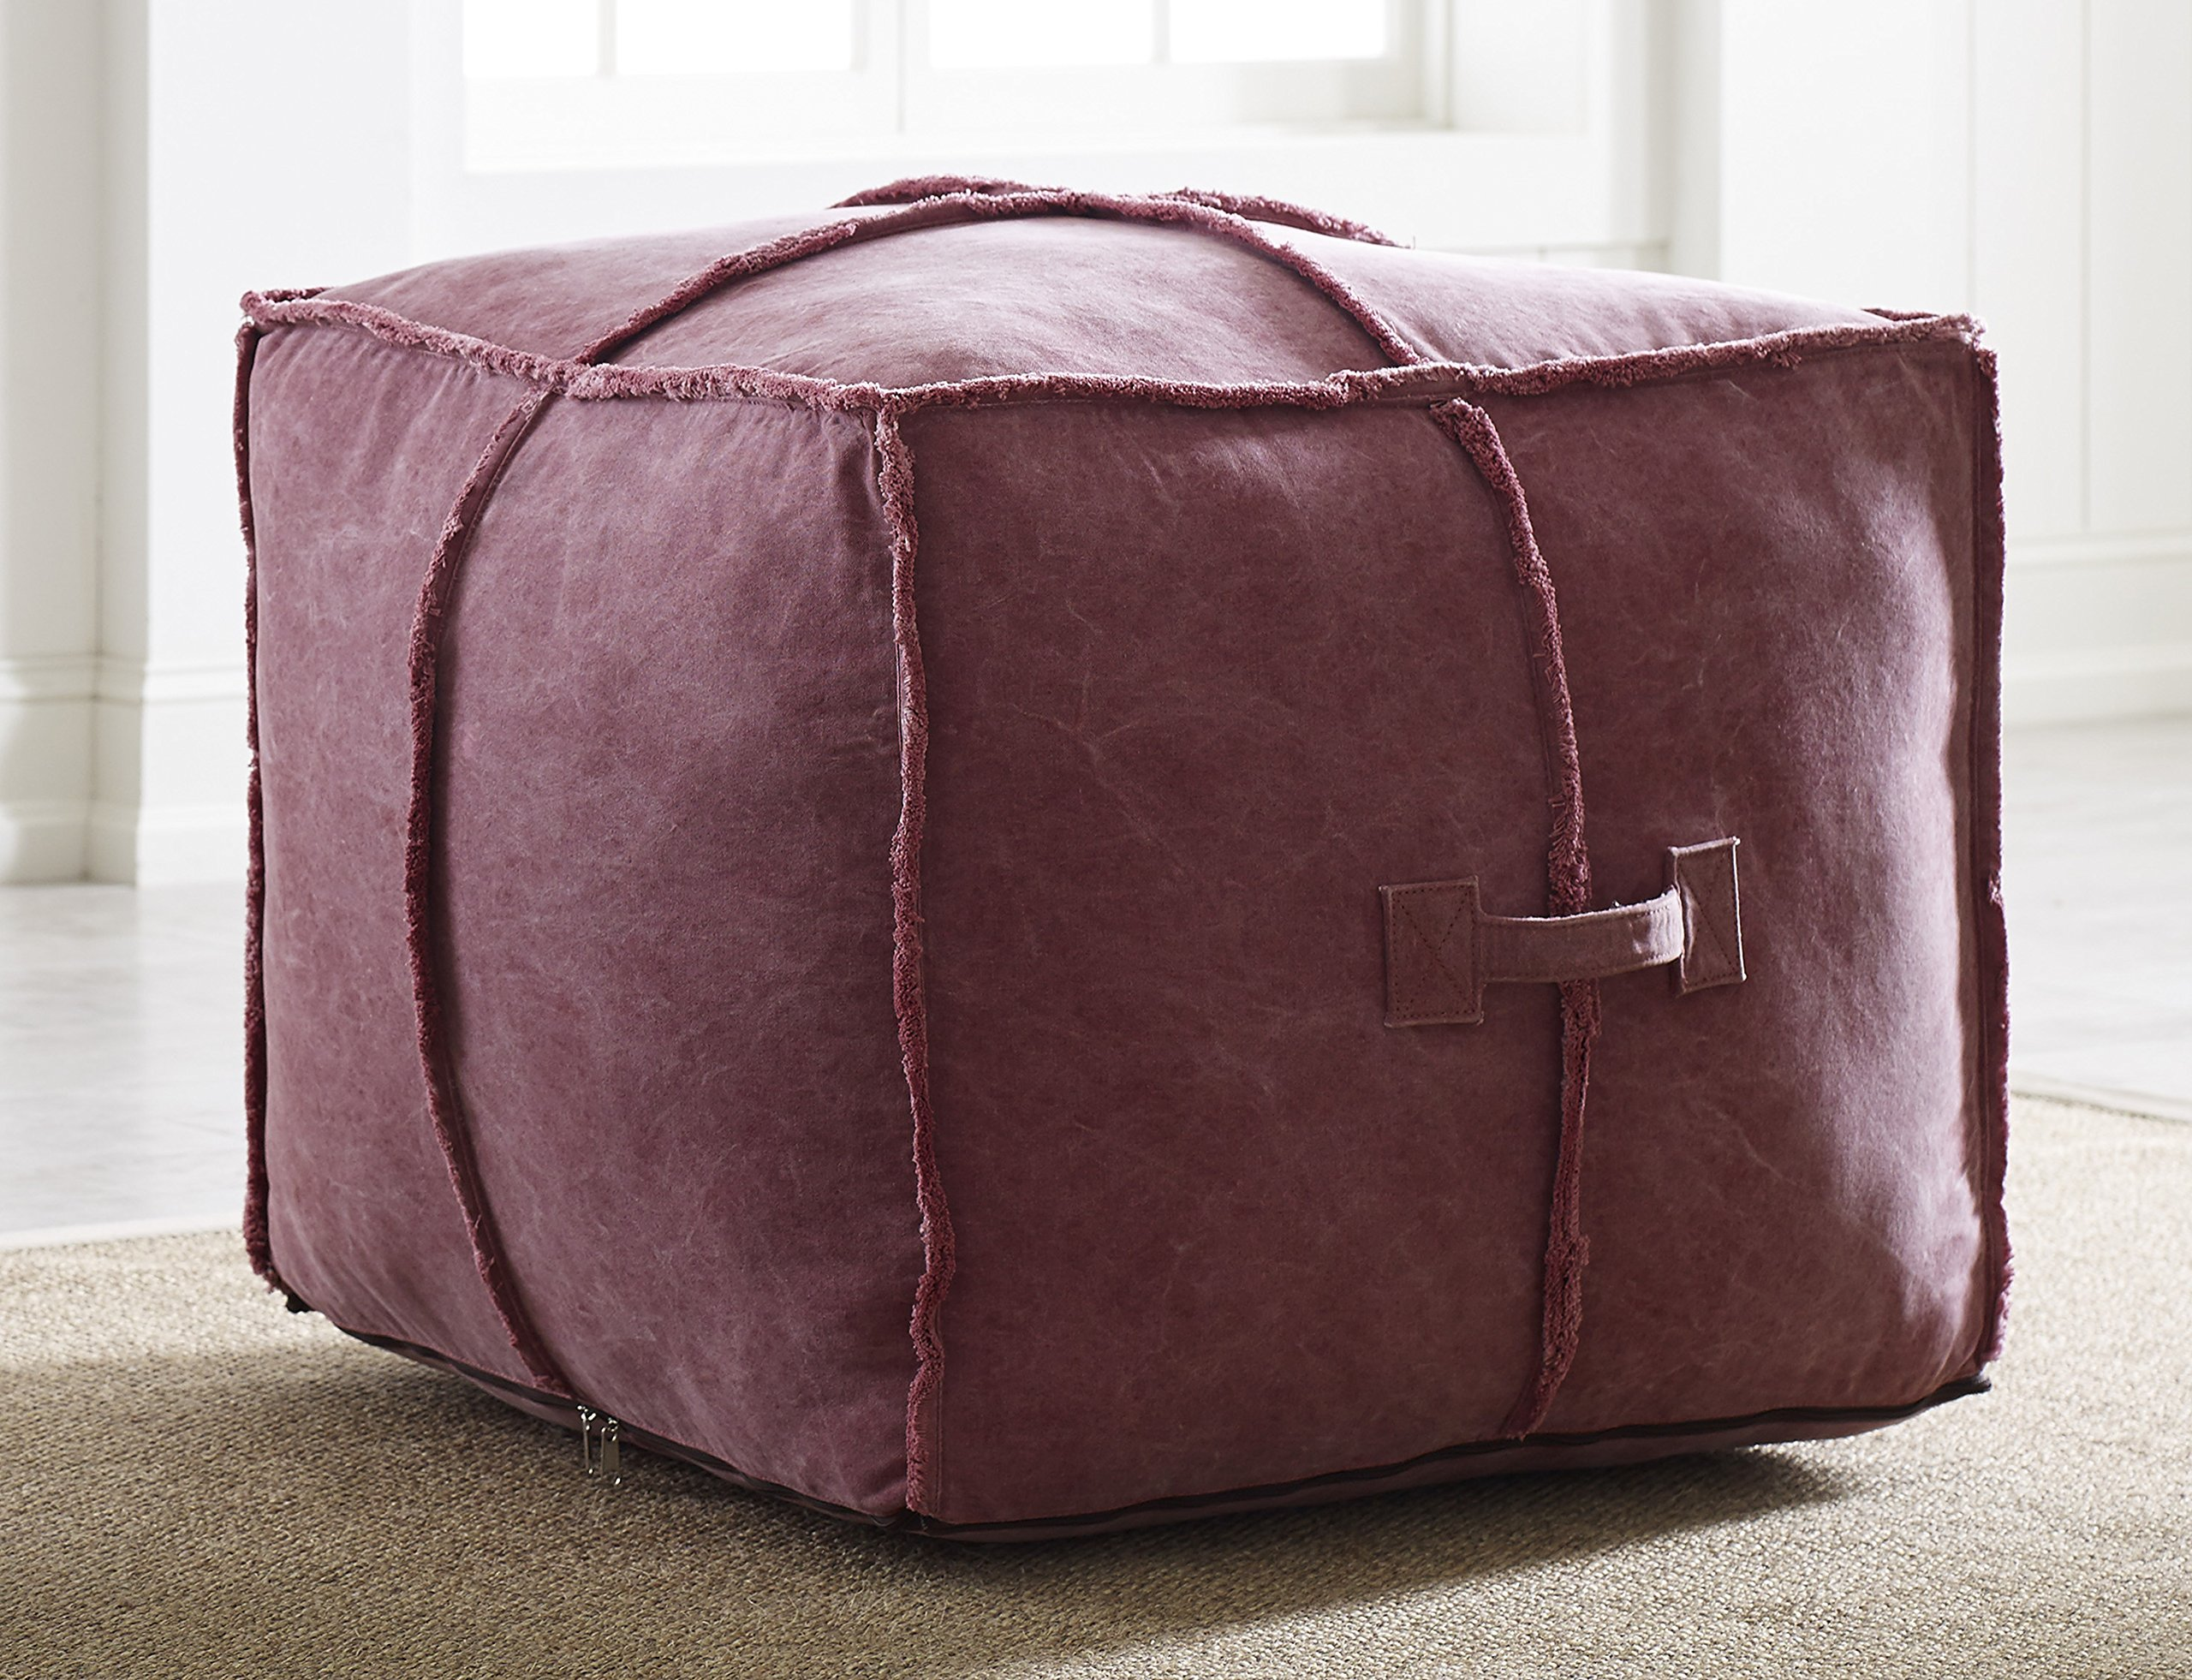 Tommy Hilfiger Doron Square Pouf in Red Stonewashed Canvas by Tommy Hilfiger